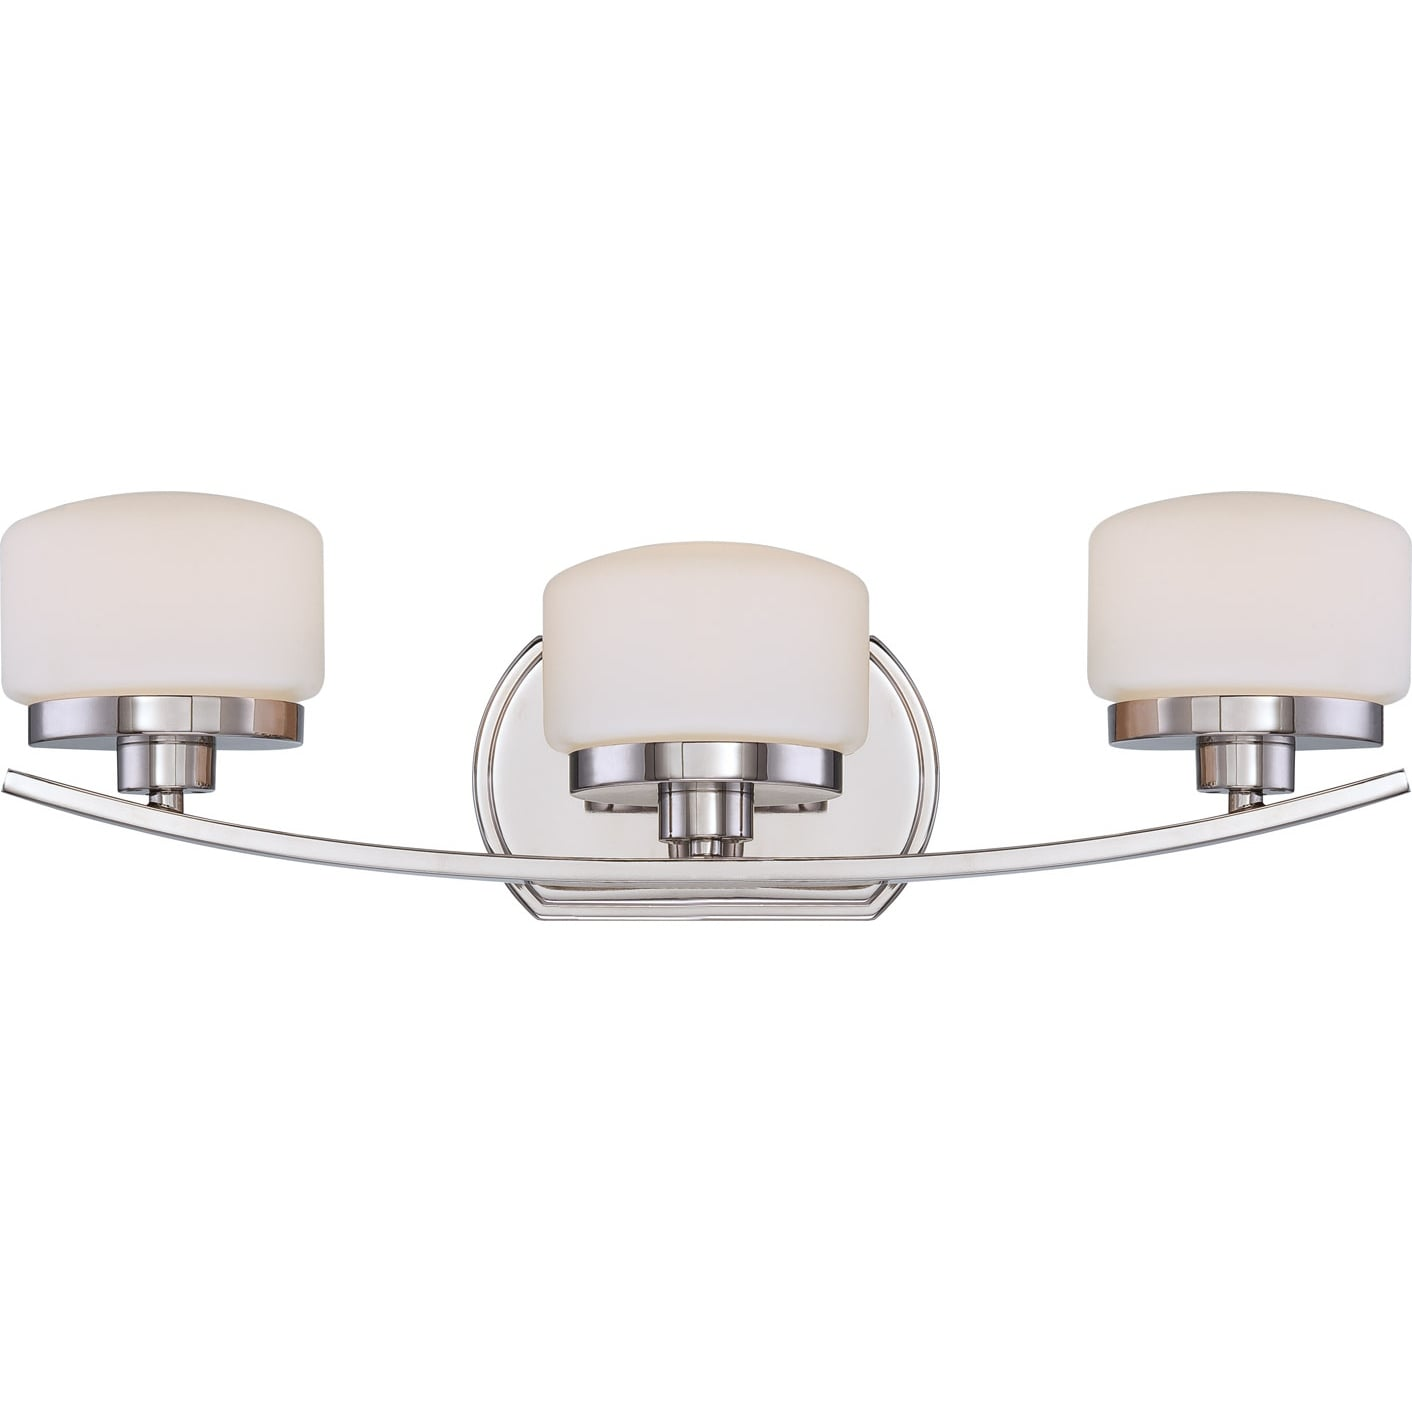 Nuvo 'Austin' 3-light Polished Nickel Vanity Fixture